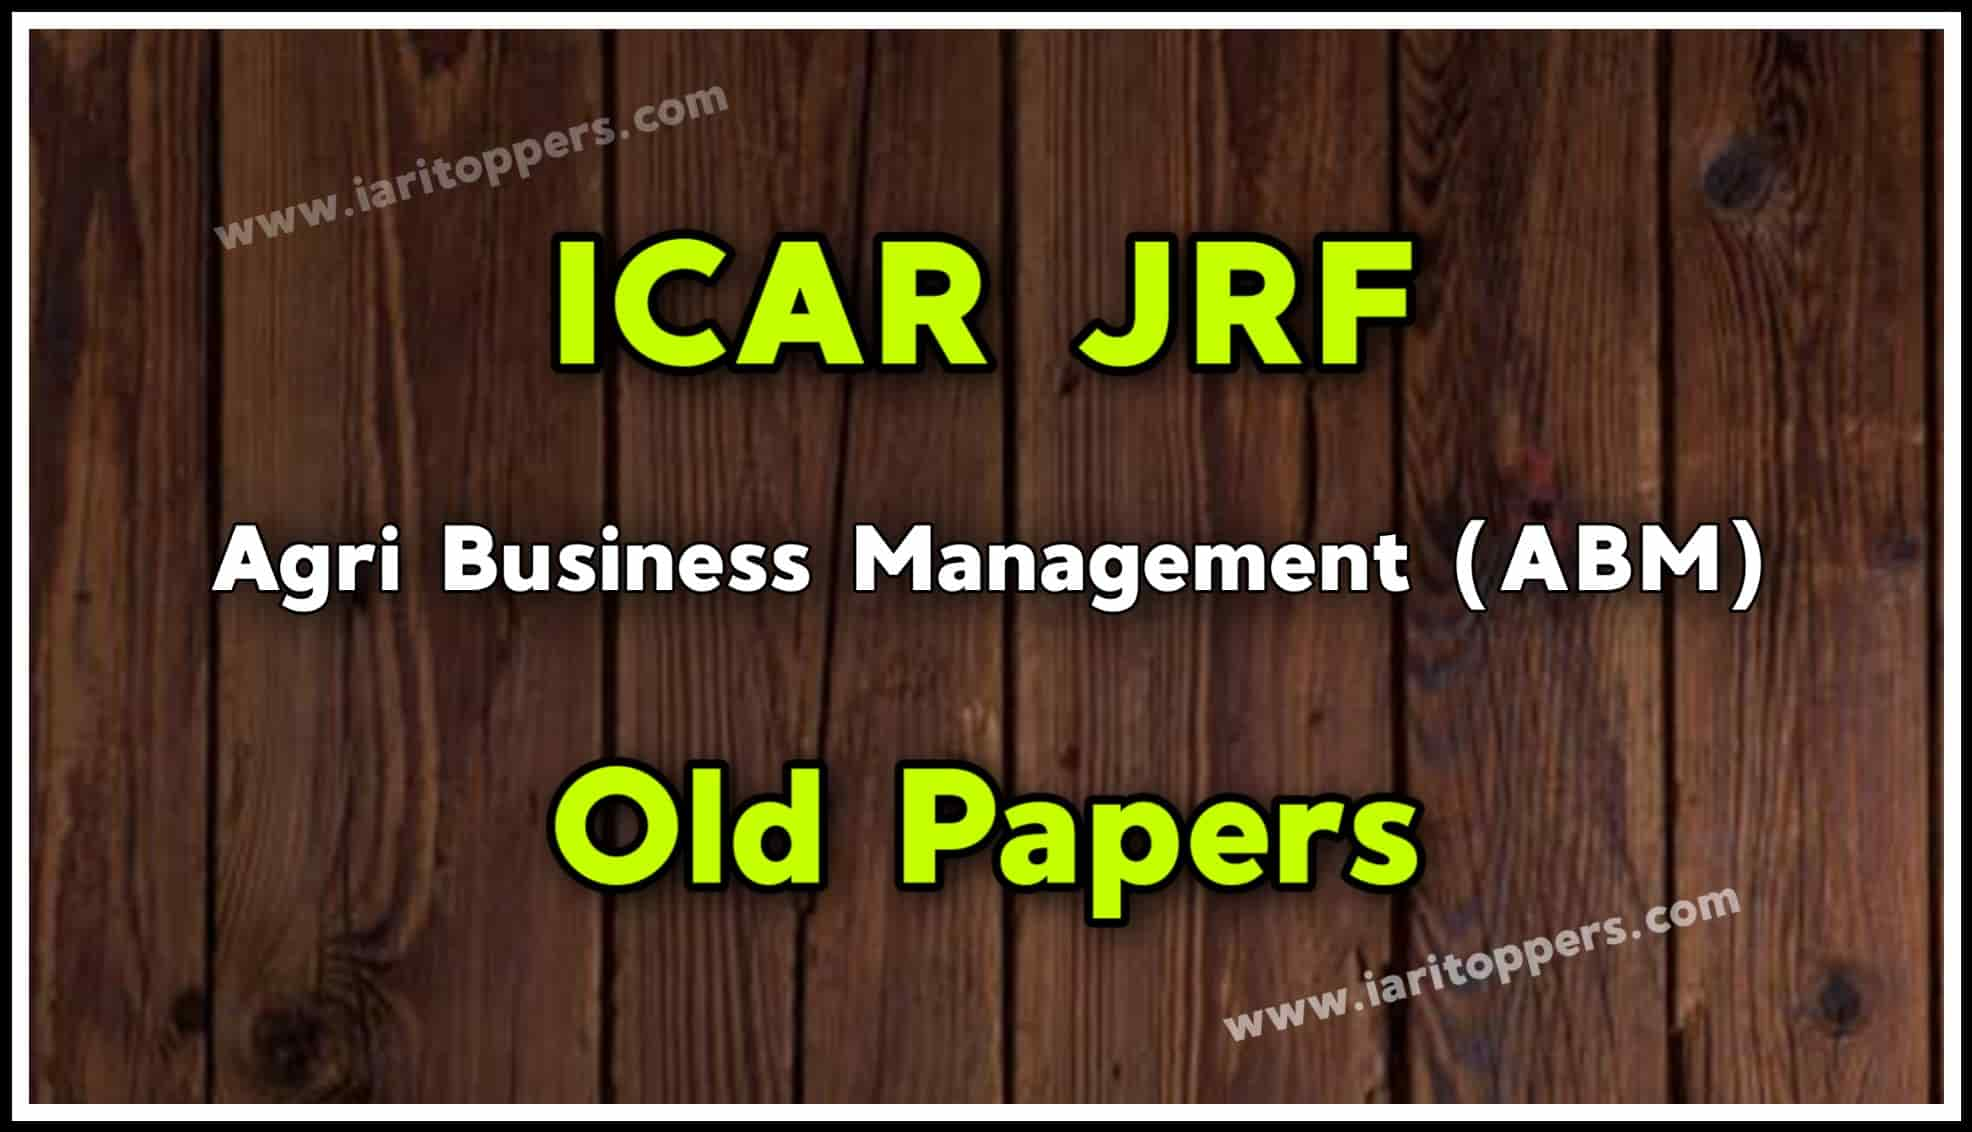 ICAR JRF Agri Business Management (ABM) Old Papers PDF